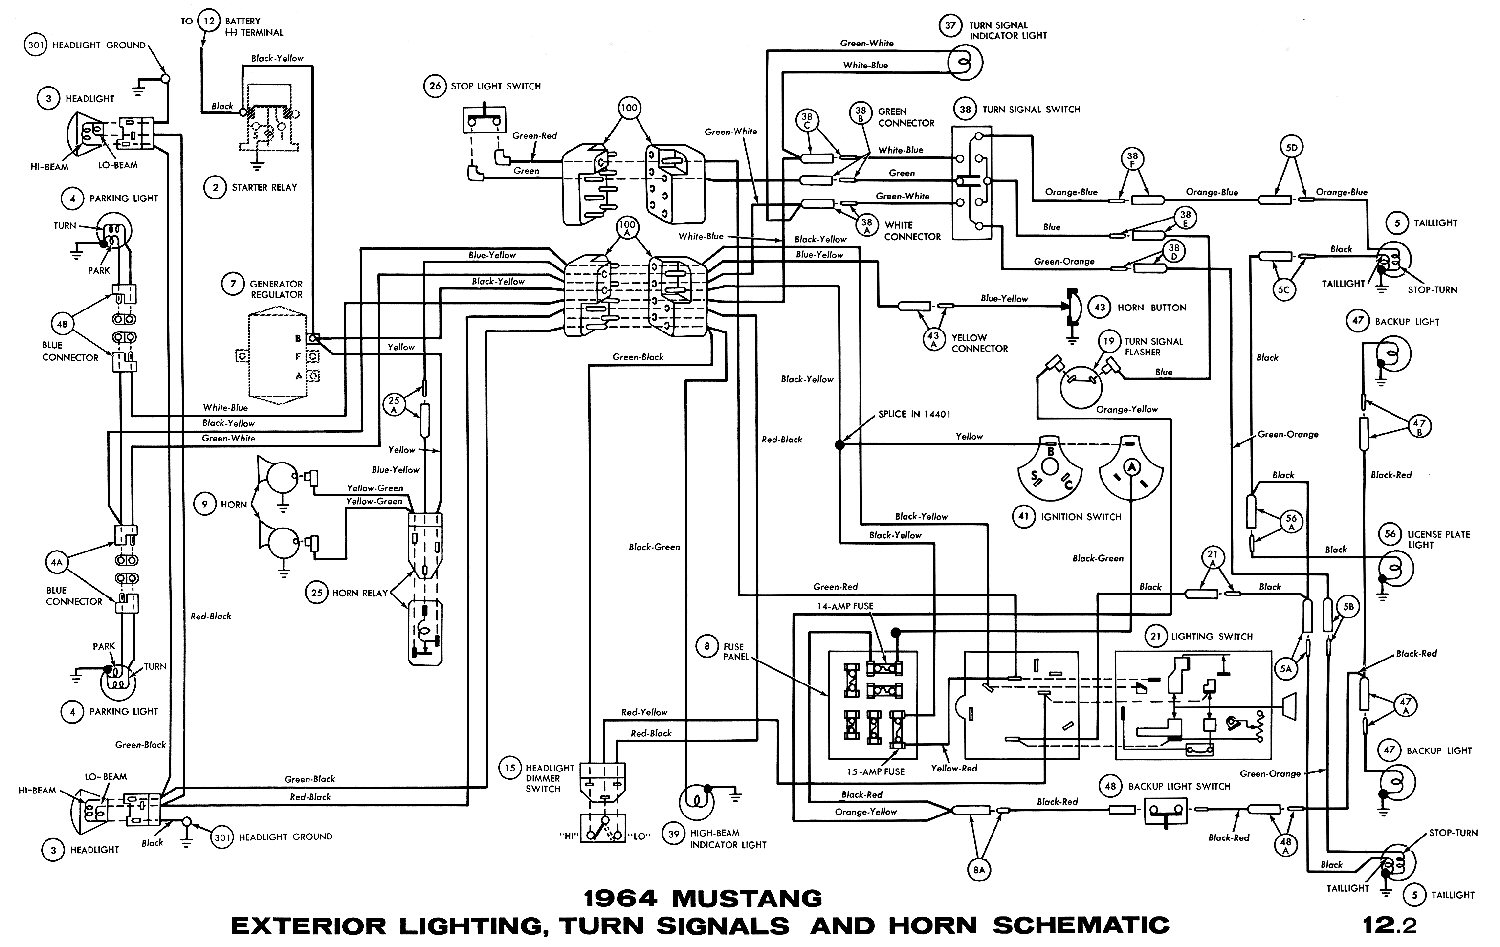 1964i 1964 mustang wiring diagrams average joe restoration 65 mustang alternator wiring diagram at n-0.co